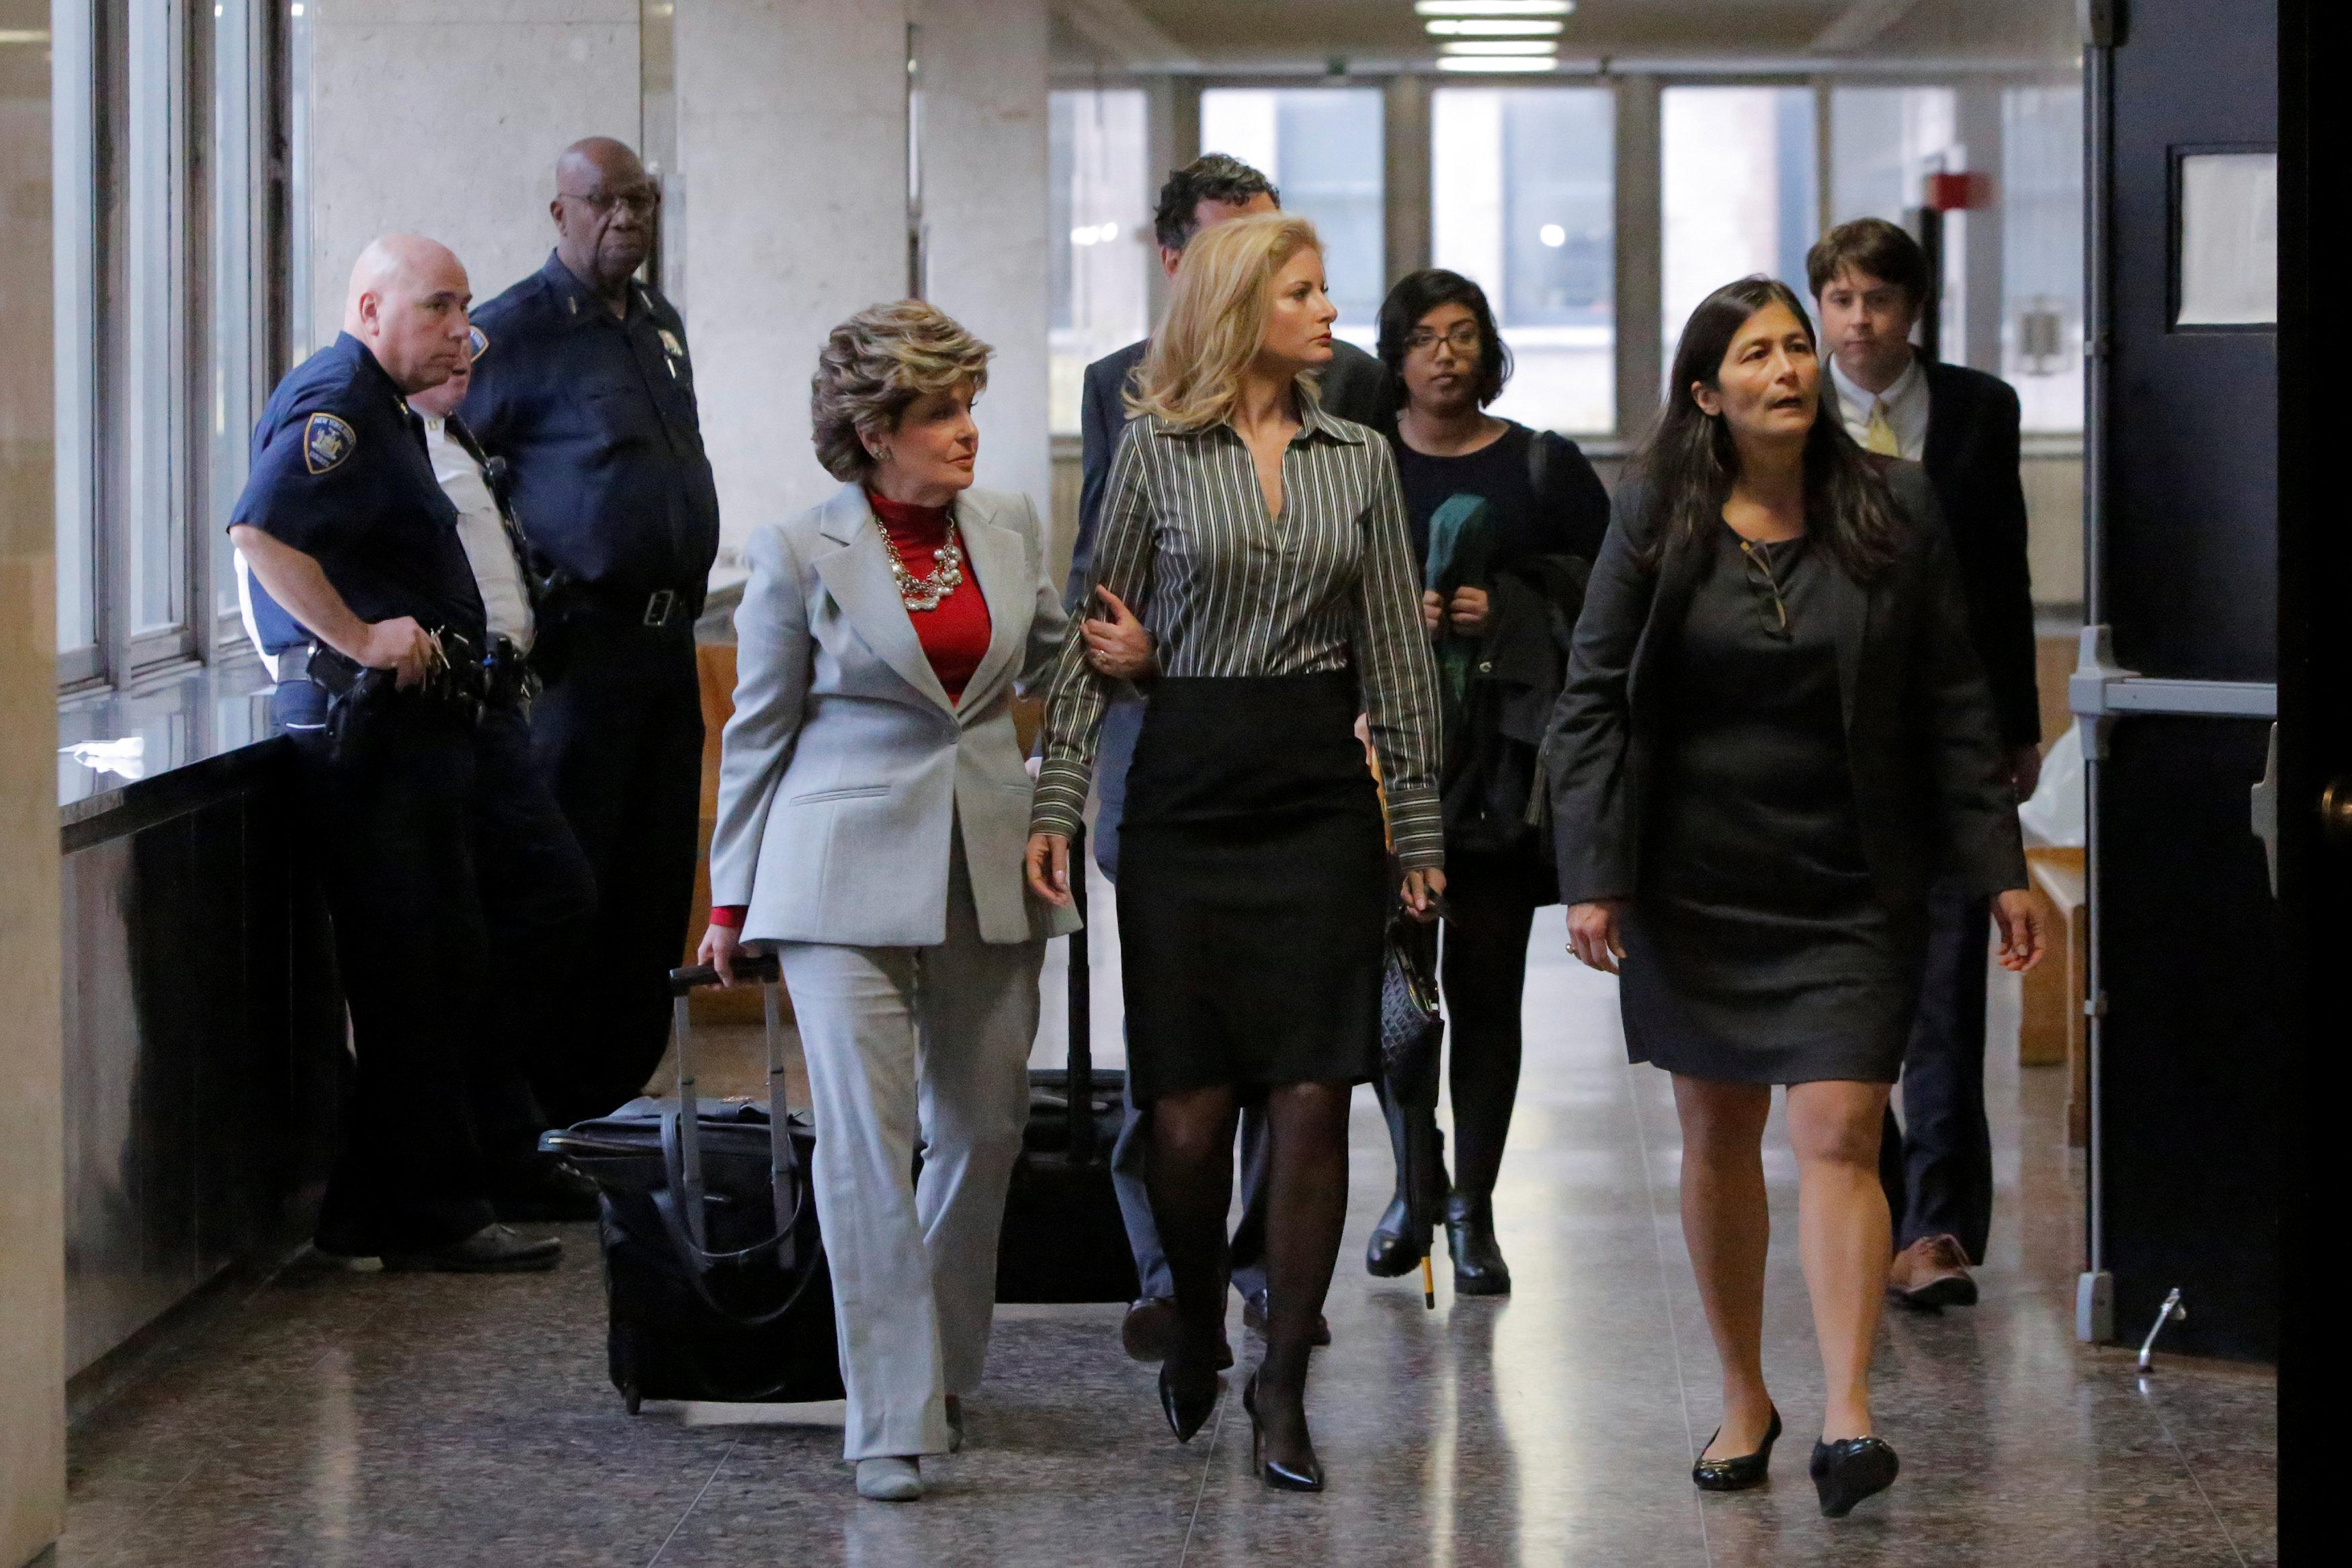 Summer Zervos (C), a former contestant on The Apprentice, arrives at New York State Supreme Court with attorney Gloria Allred (L) as a judge considers throwing out a defamation case against U.S. President Donald Trump in Manhattan, New York City, U.S., December 5, 2017. Andrew Kelly